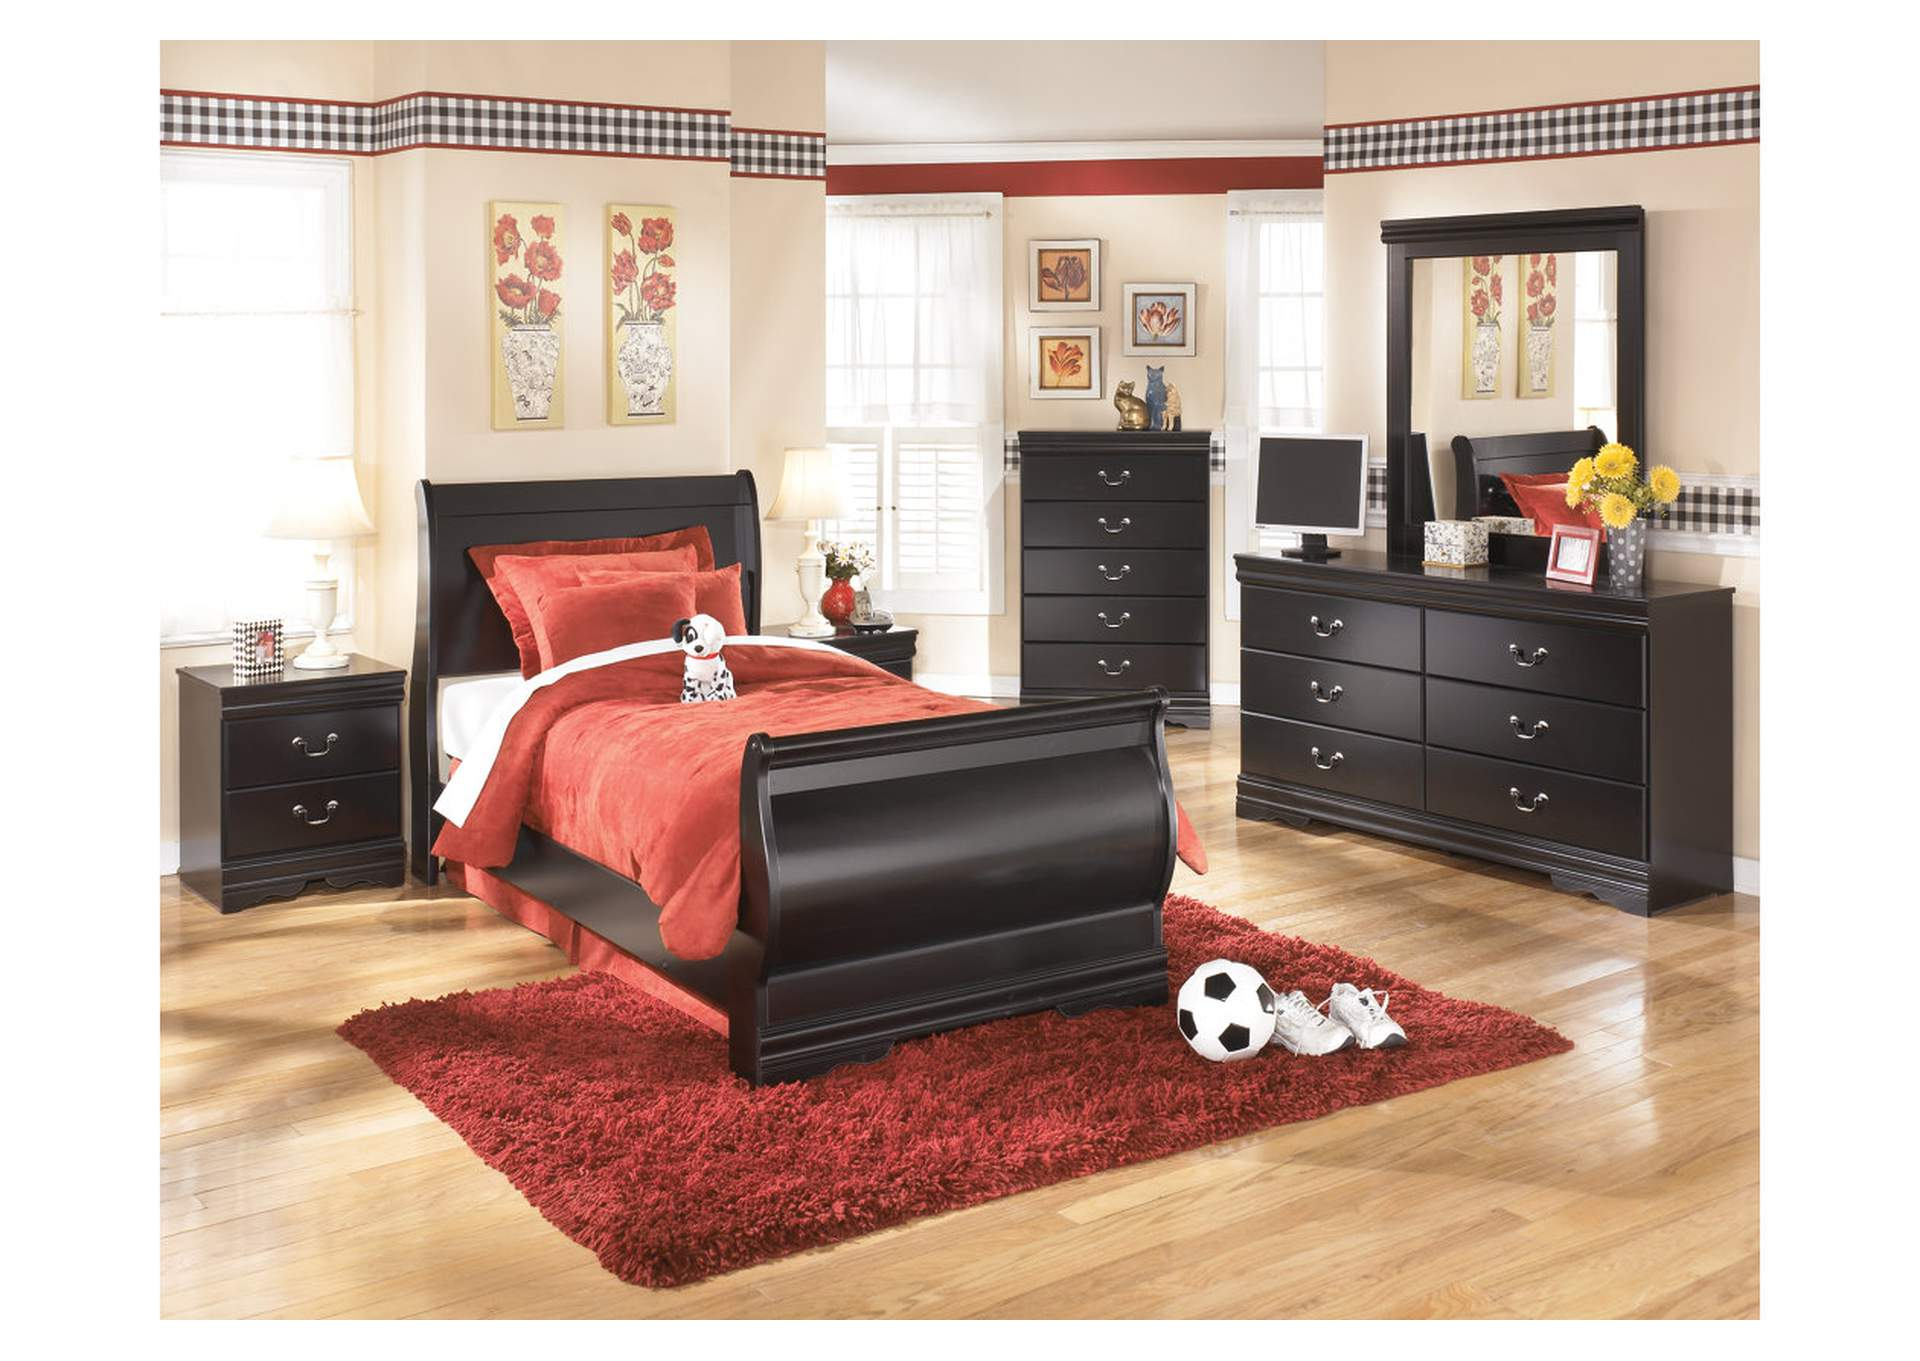 Huey Vineyard Twin Sleigh Bed, Dresser & Mirror,Signature Design By Ashley